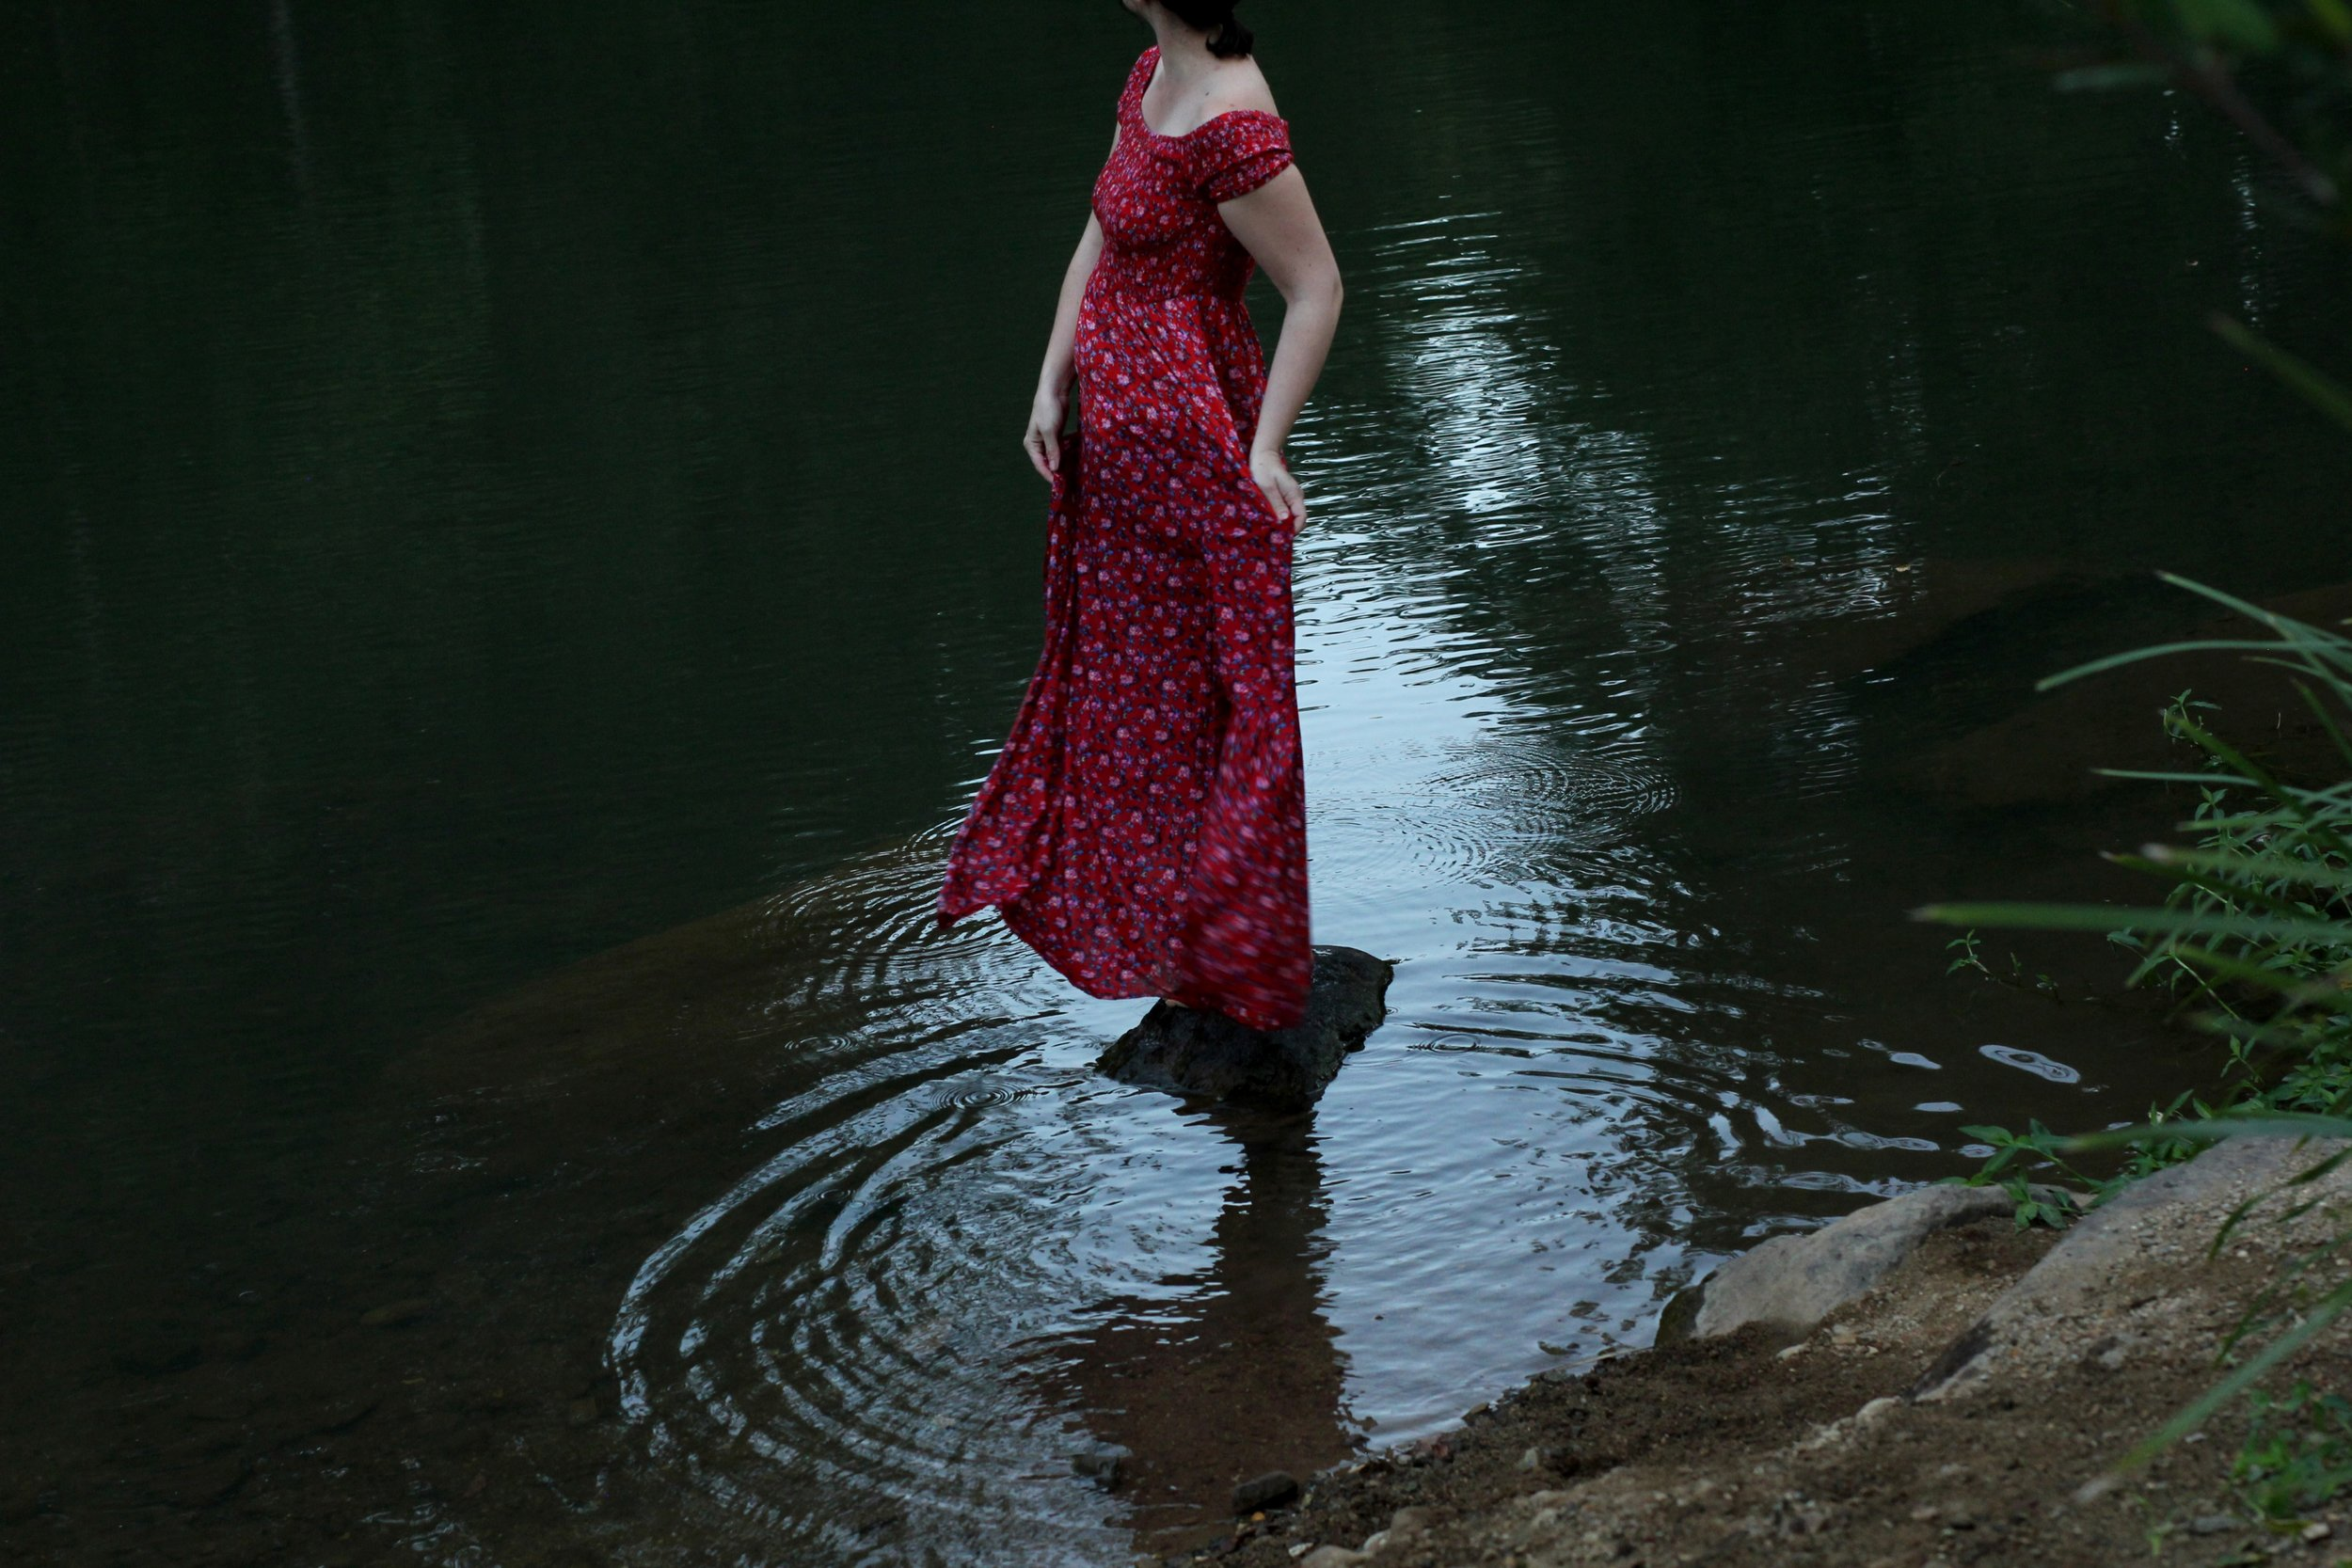 """Image taken by Liz during the course lesson """"Images of Reflection."""""""